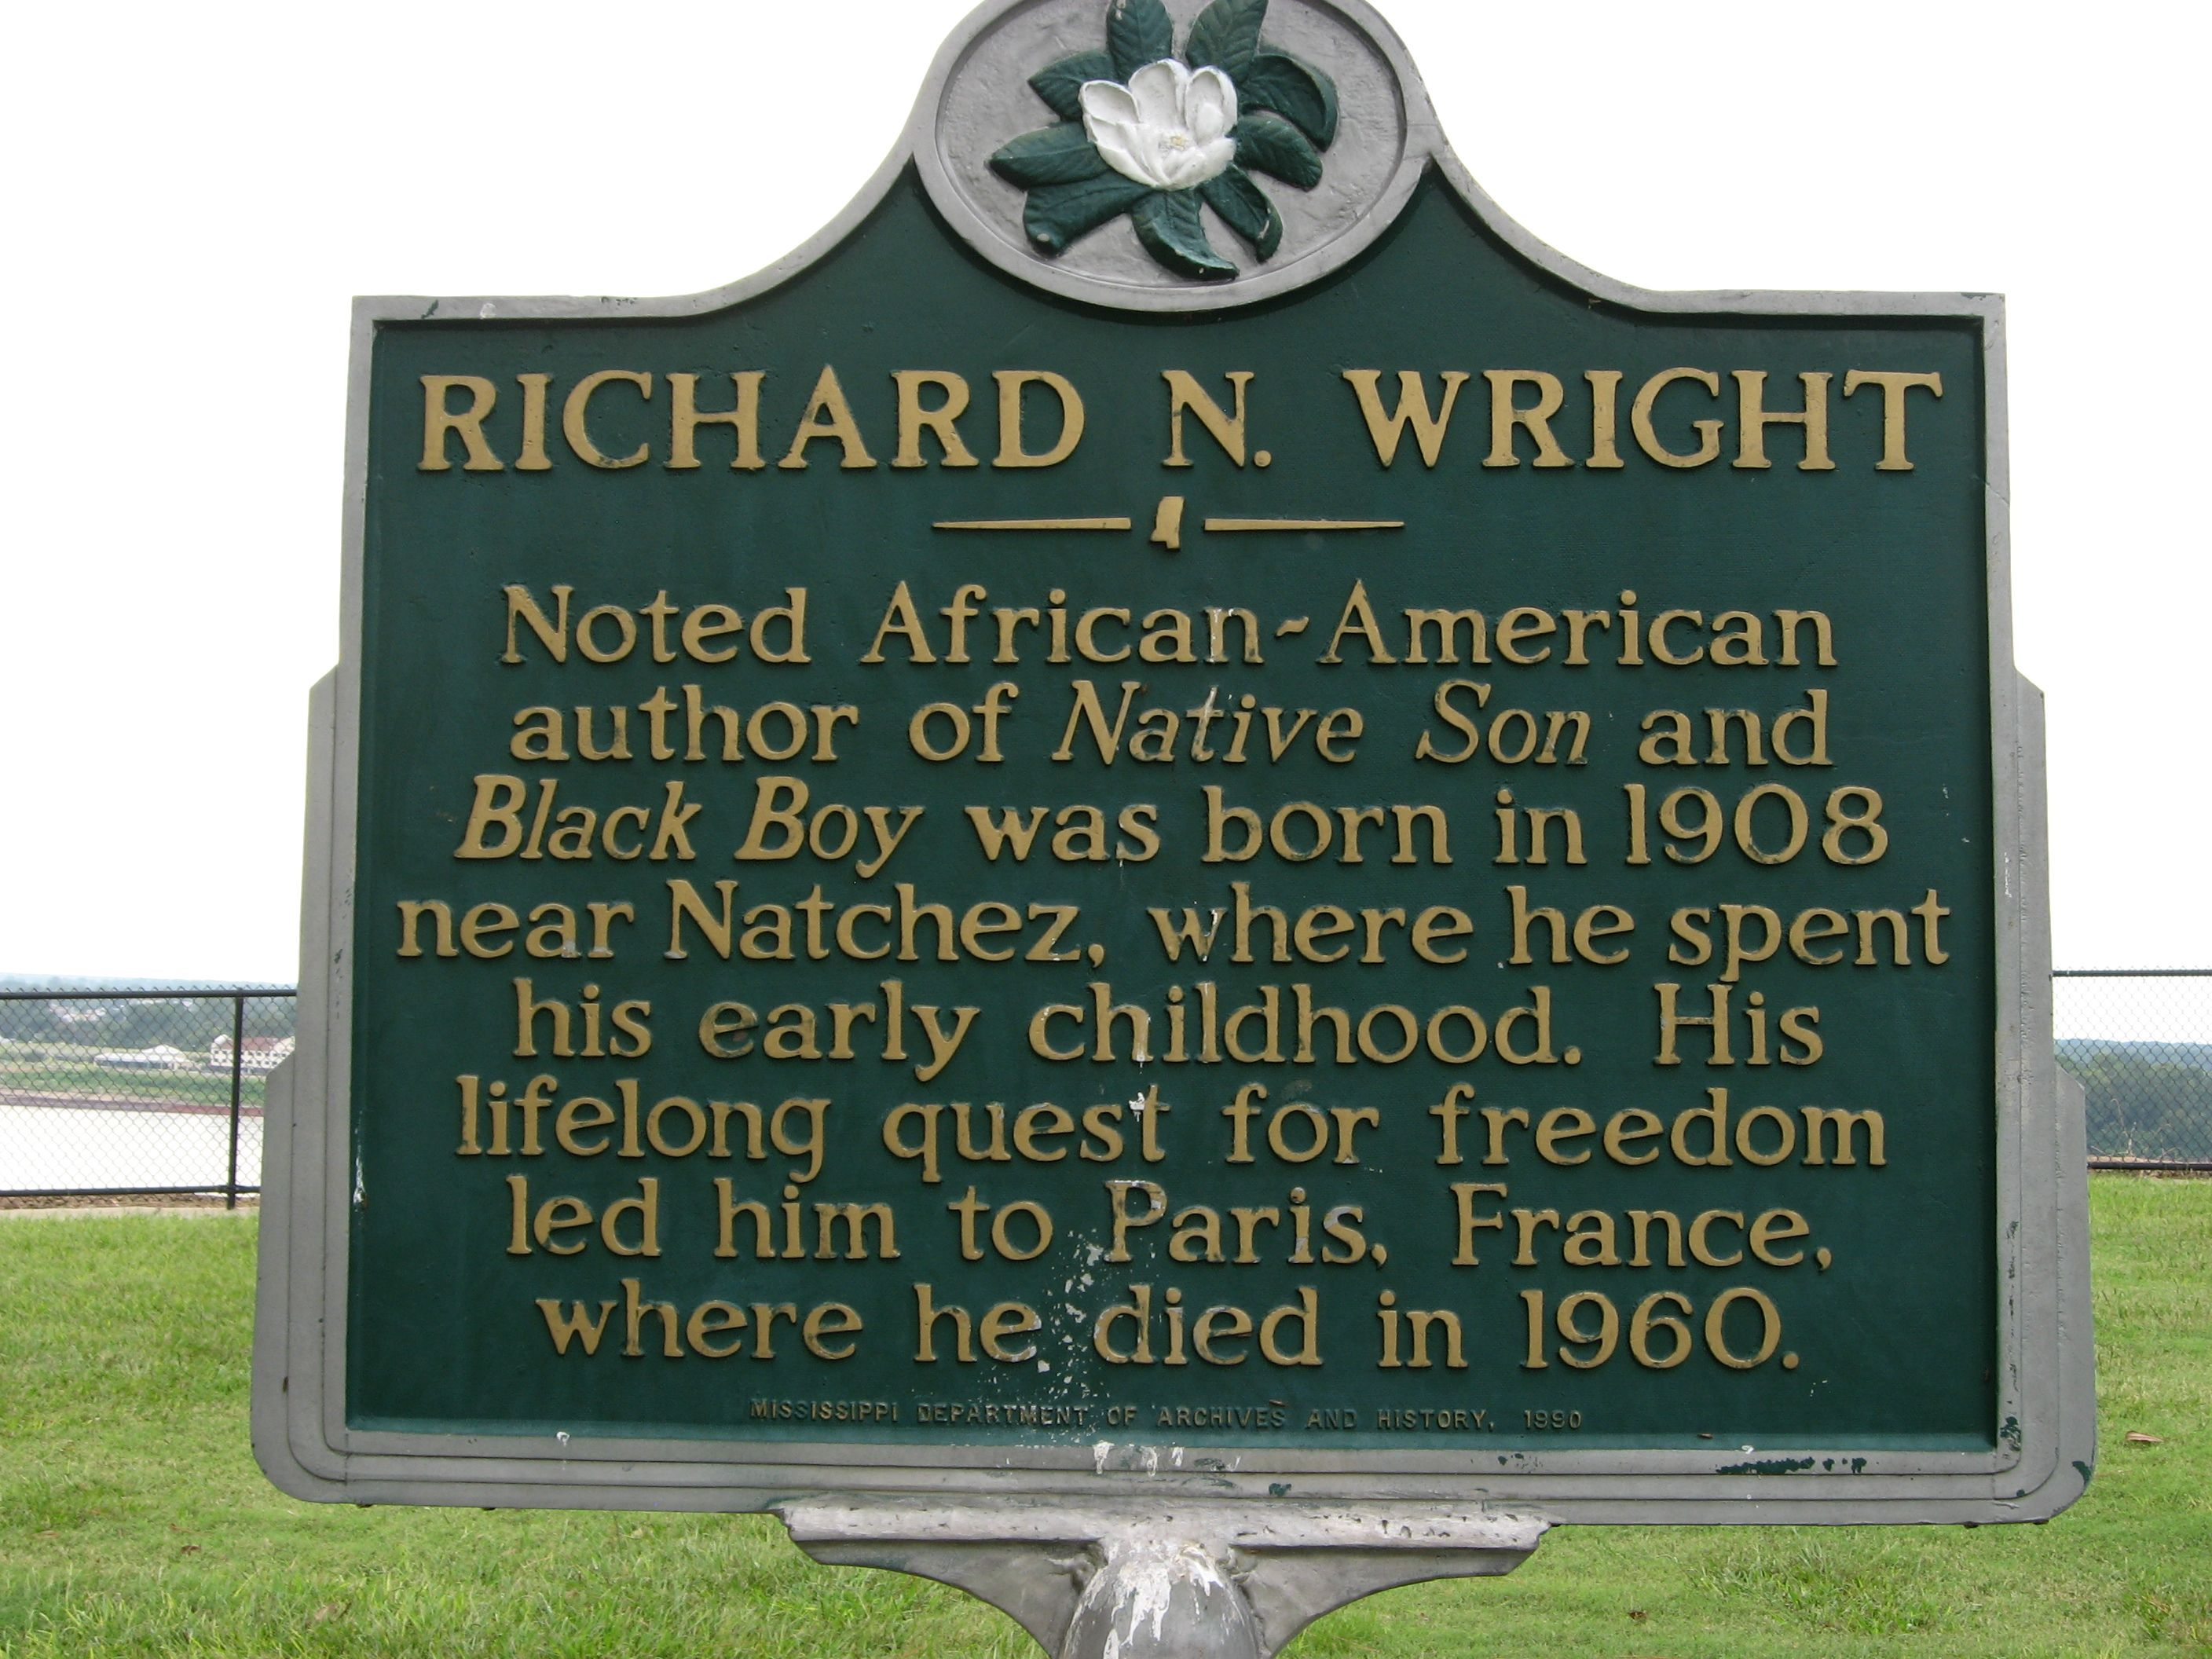 best ideas about richard wright author richard 17 best ideas about richard wright author richard wright african american history and north merrick library